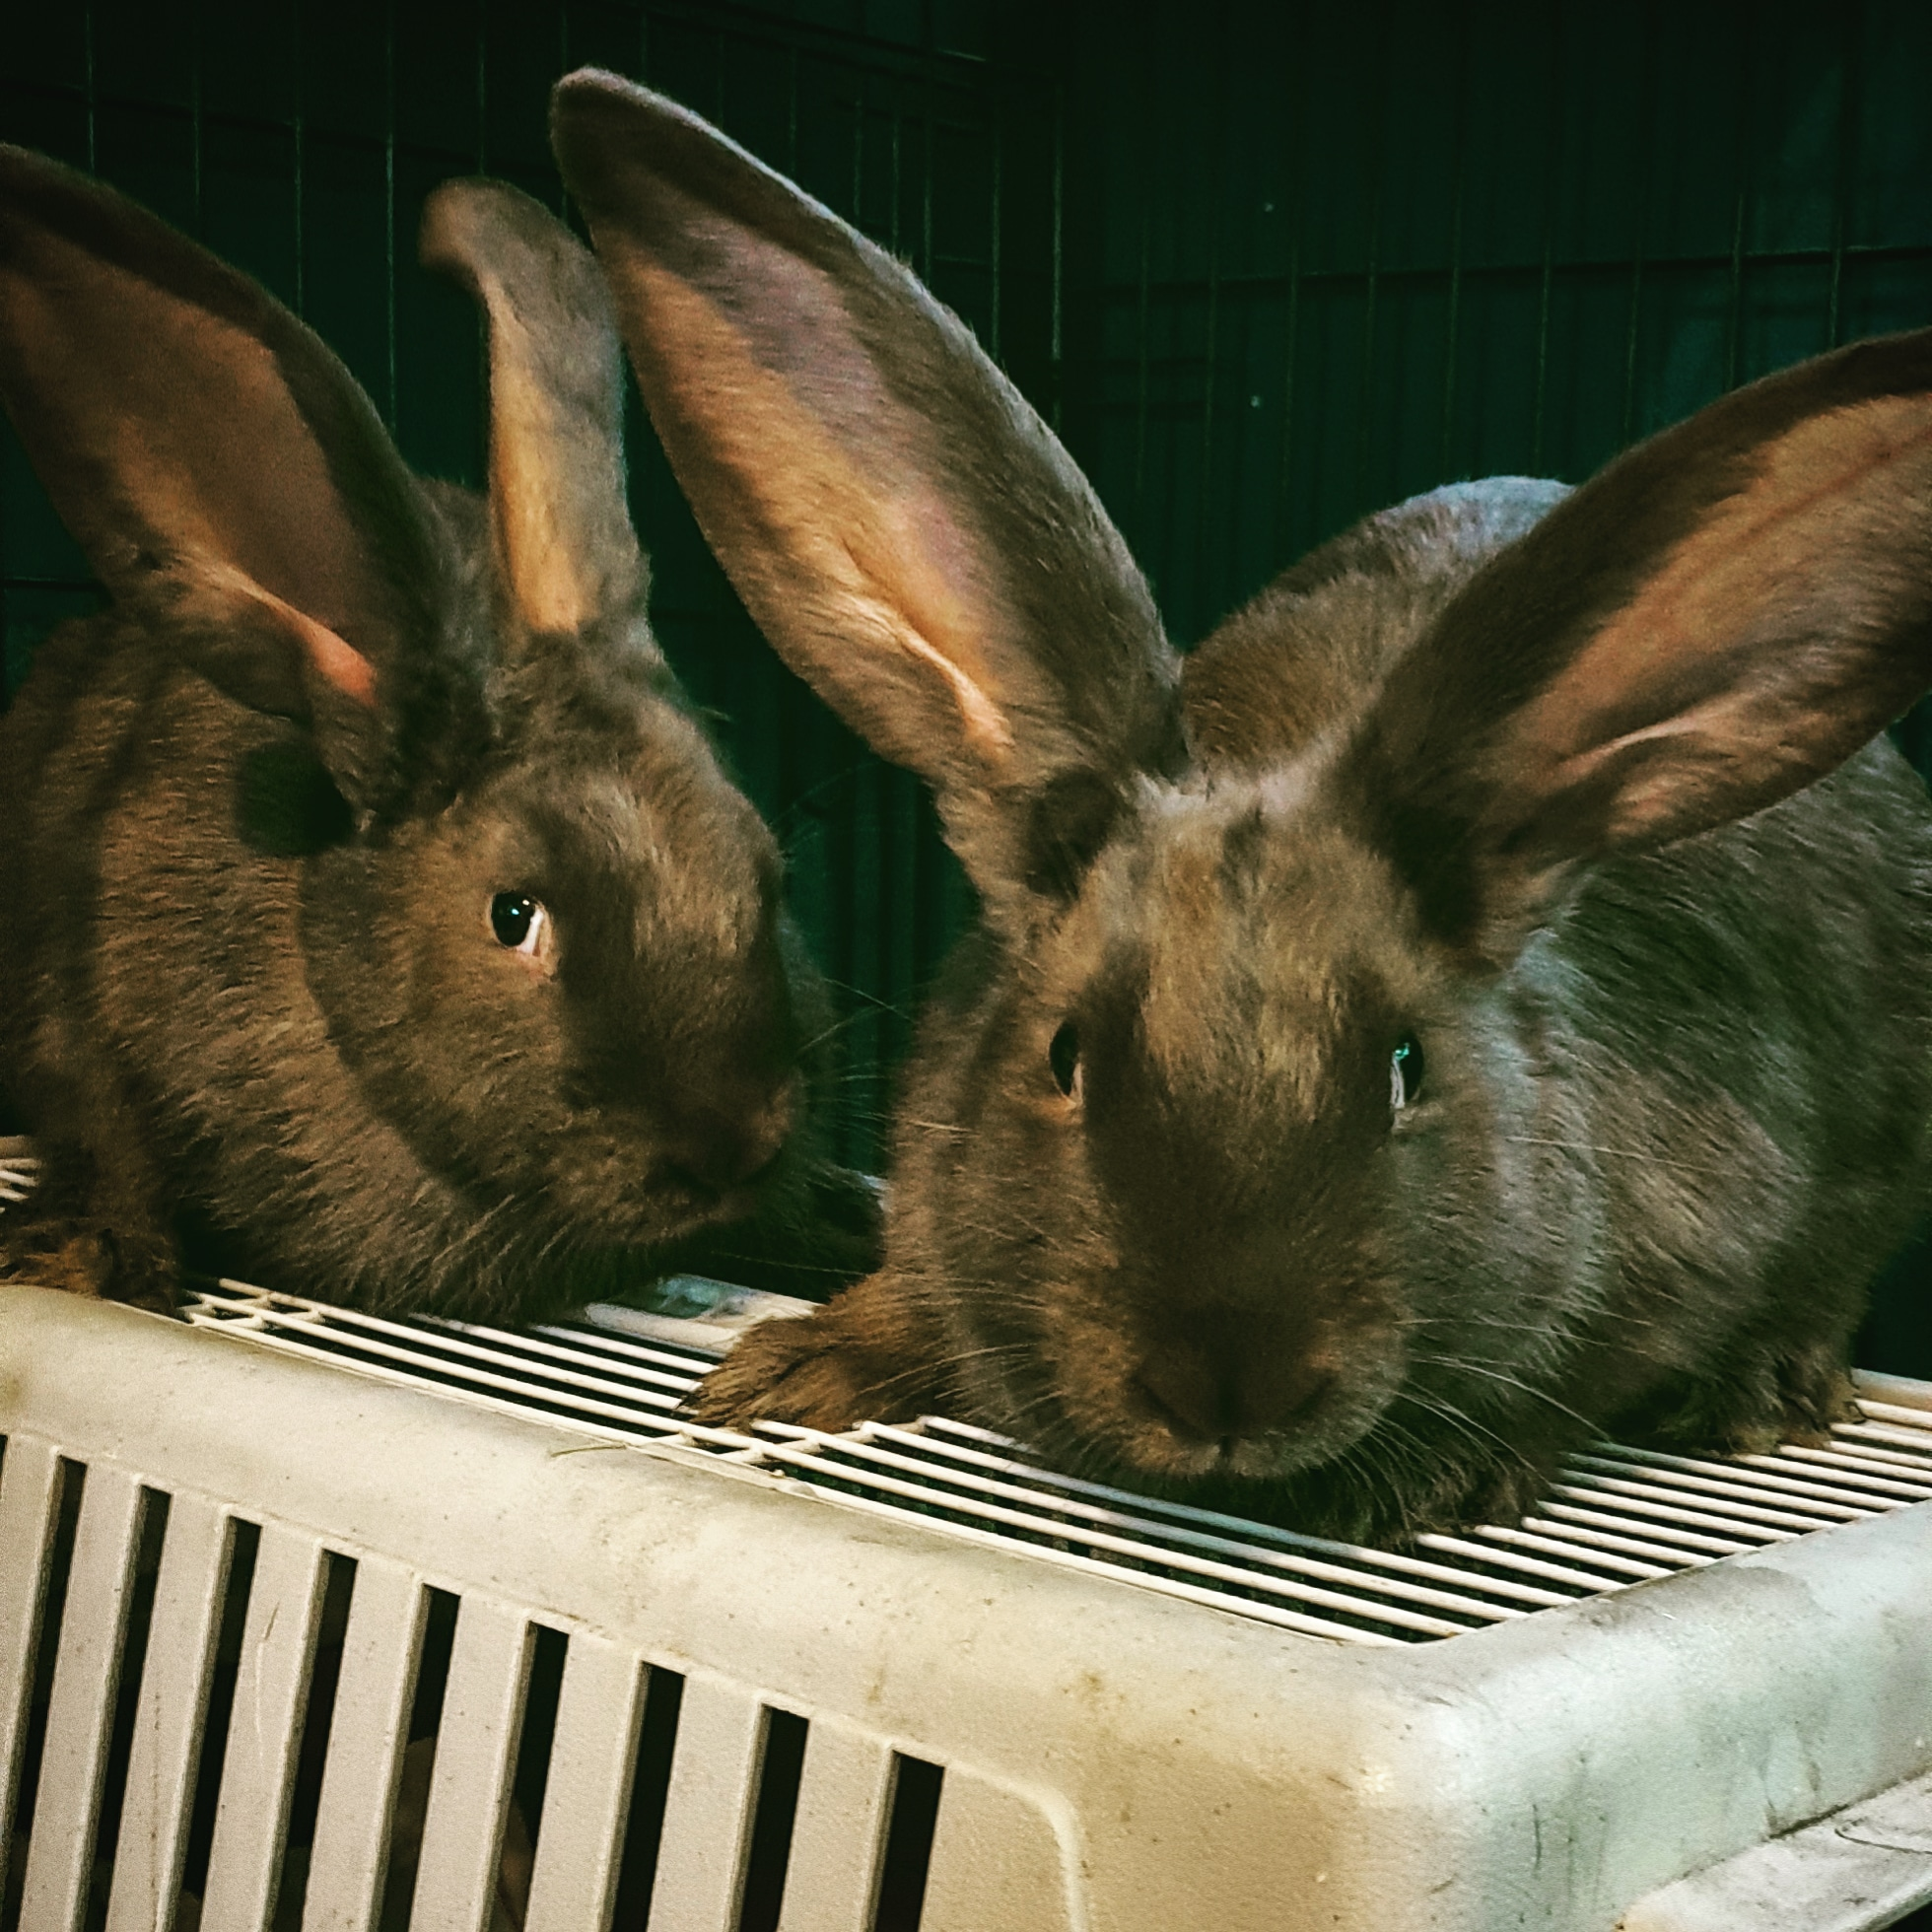 Meat Rabbits - We breed a group of New Zealand/Californian cross meat rabbits. Kits are born in a variety of colours including black, brown, grey and blue. Please contact us for availability of does and bucks.Does, Bucks, Pairs and Trio's available.